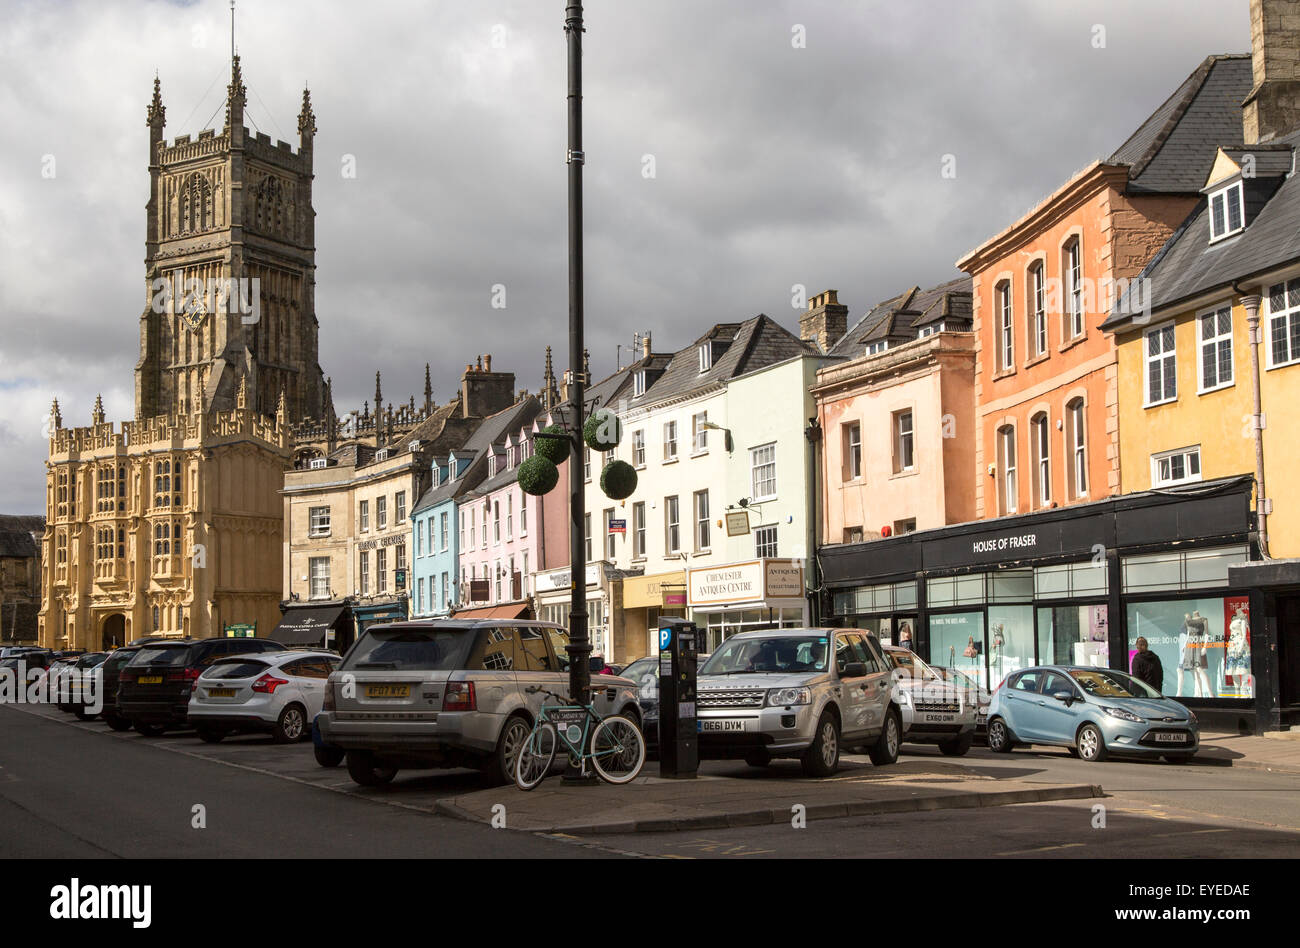 Church and historic buildings in town centre, Cirencester, Gloucestershire, England, UK, - Stock Image